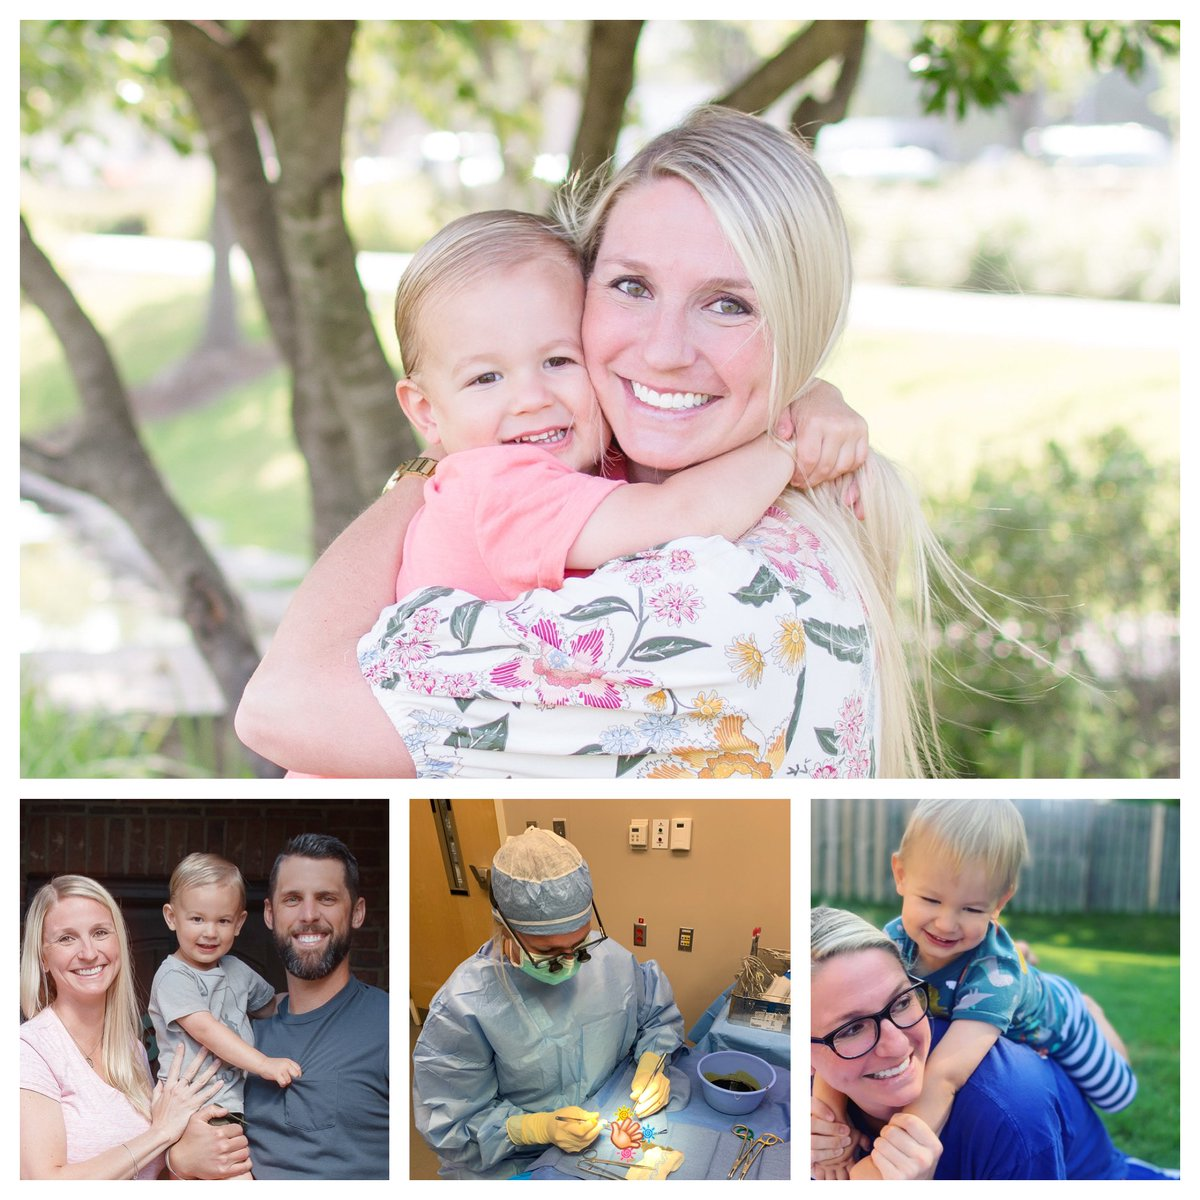 """Happy HBD to our Favorite Human! Hunt calls her """"mommy"""", patients call her """"Doctor""""  and I call her """"Wonder Woman"""" #doctormom #shesthebest #HBD #loveyou pic.twitter.com/PwxhQ0Z3ls"""